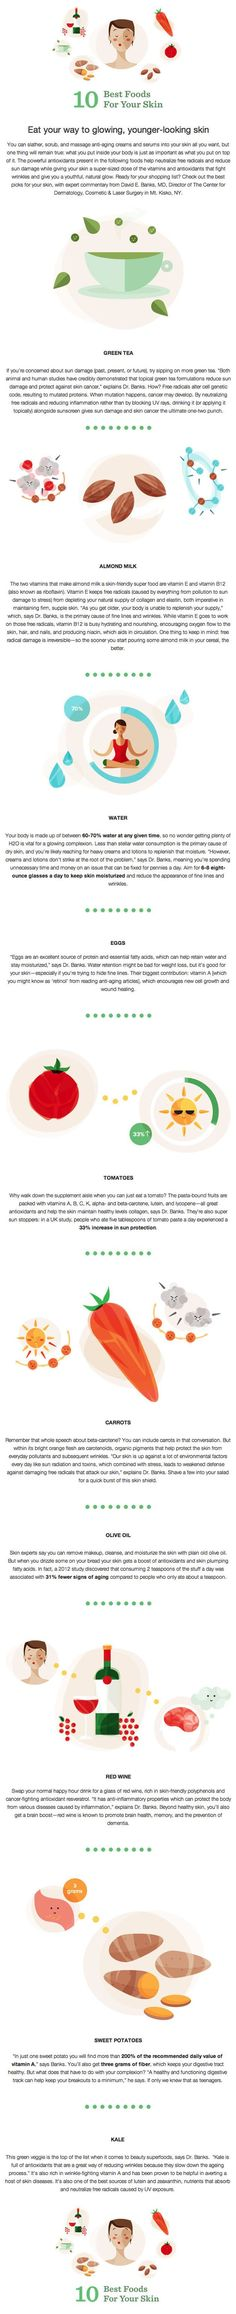 The 10 best foods for your skin [Infographic] | HellaWella